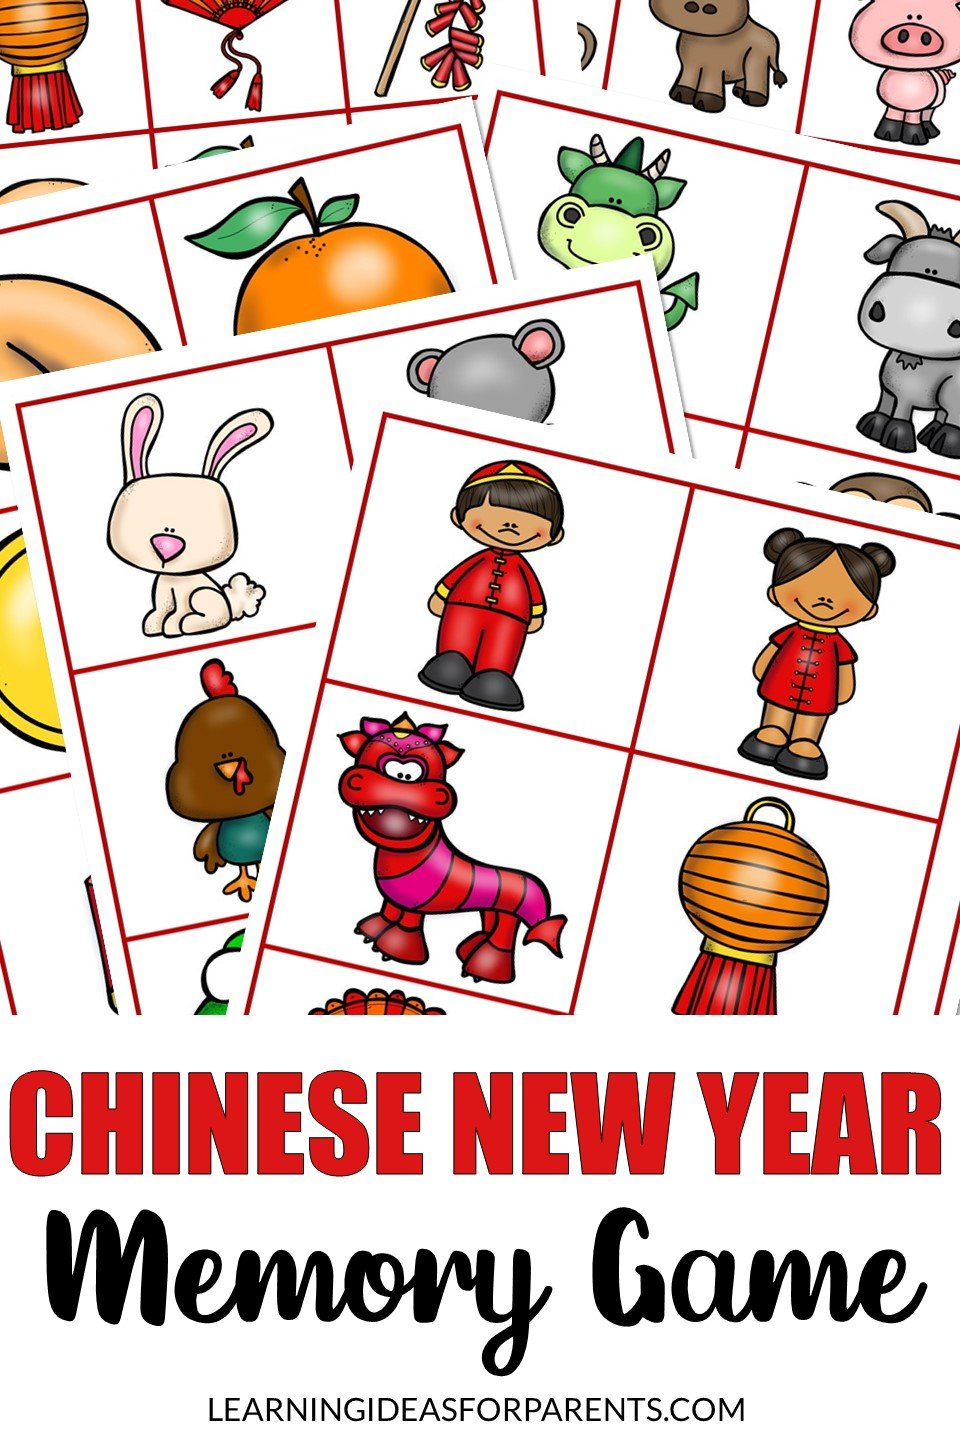 Free printable Chinese New Year memory game for kids.